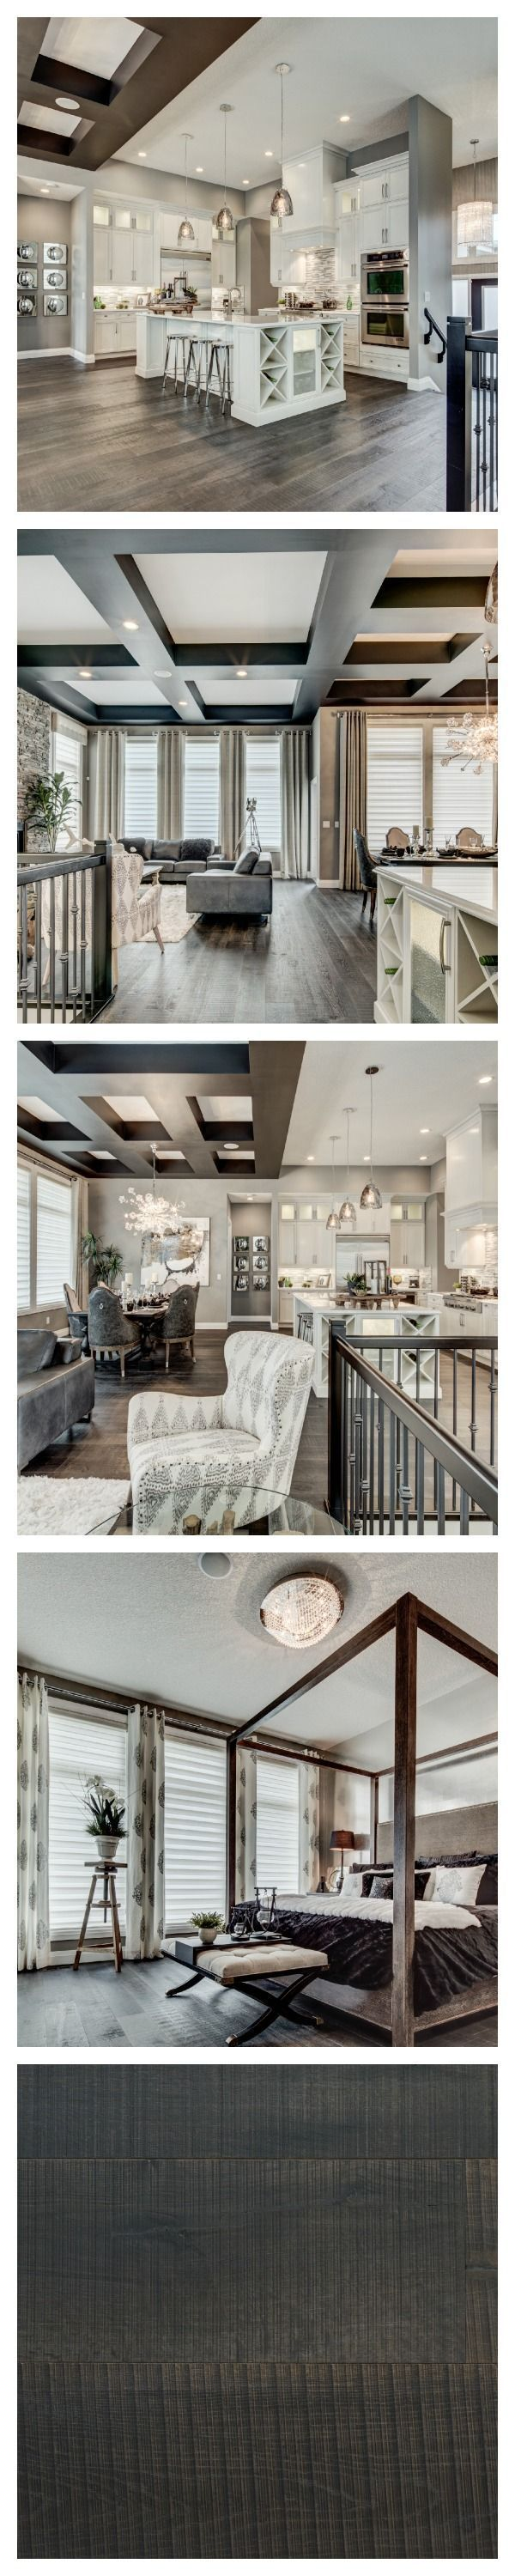 Open Concept Kitchen Design Inspiration Decorating Design